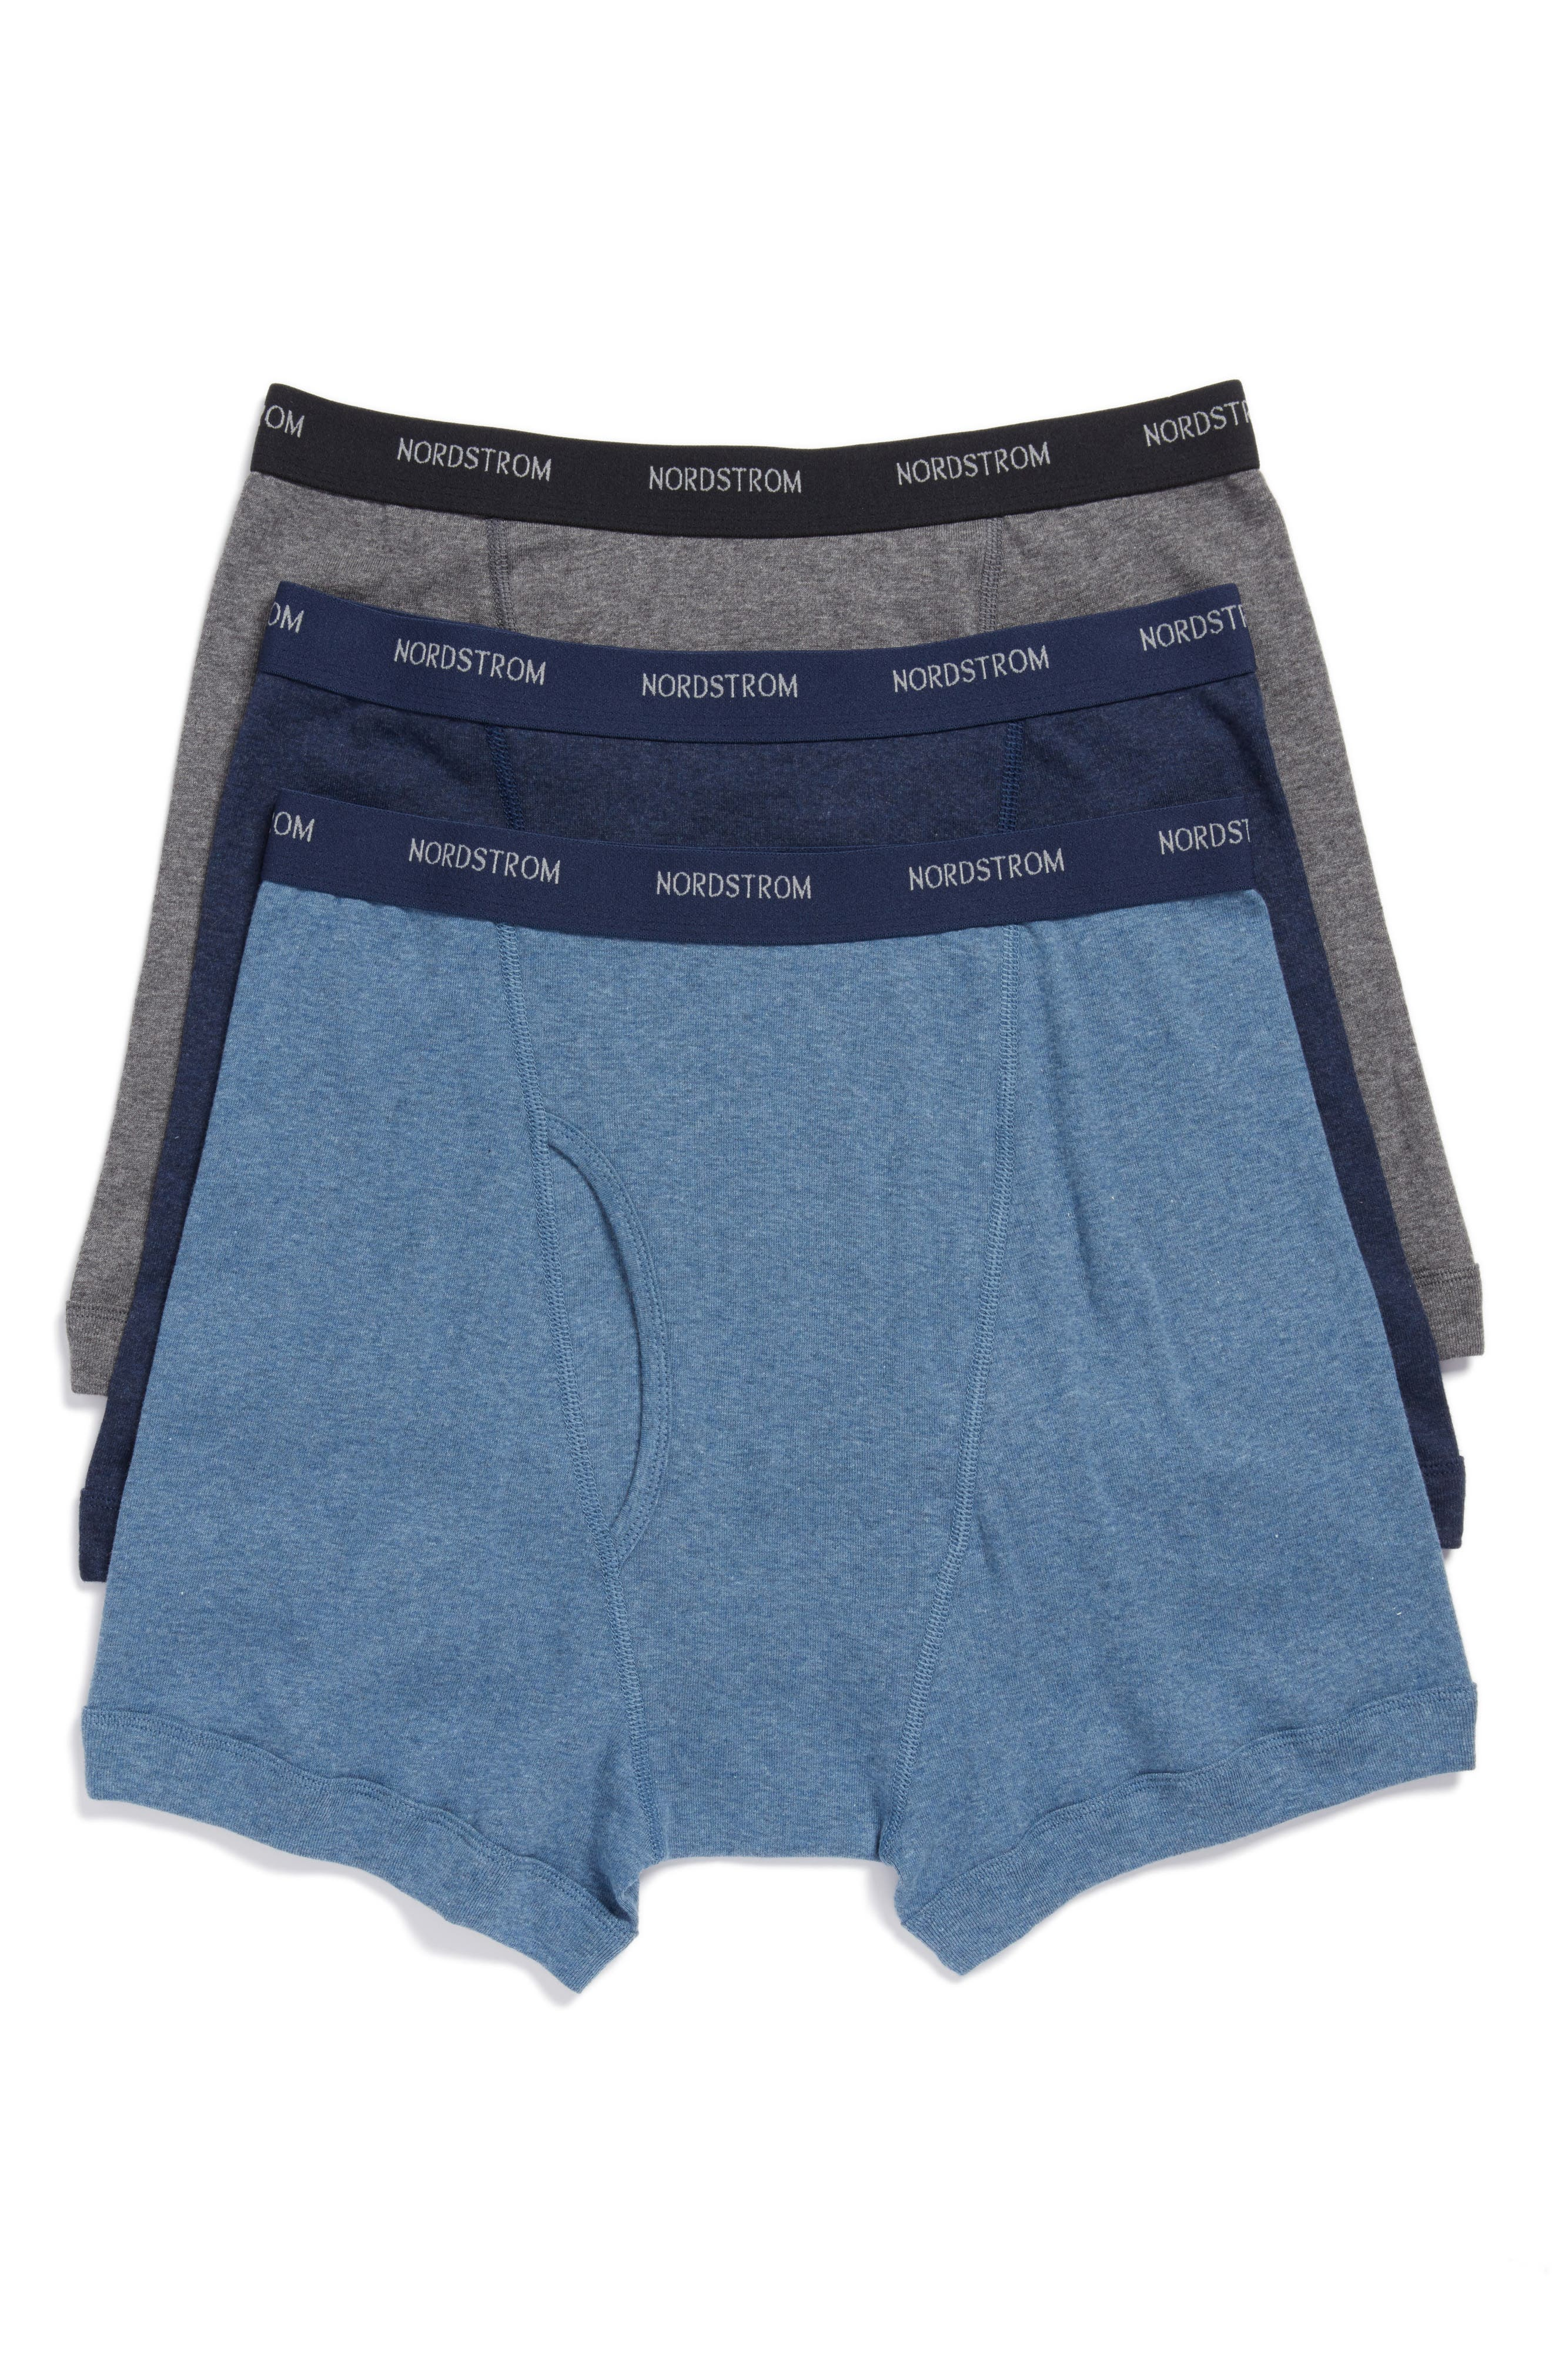 Nordstrom Men's Shop 3-Pack Supima® Cotton Boxer Briefs